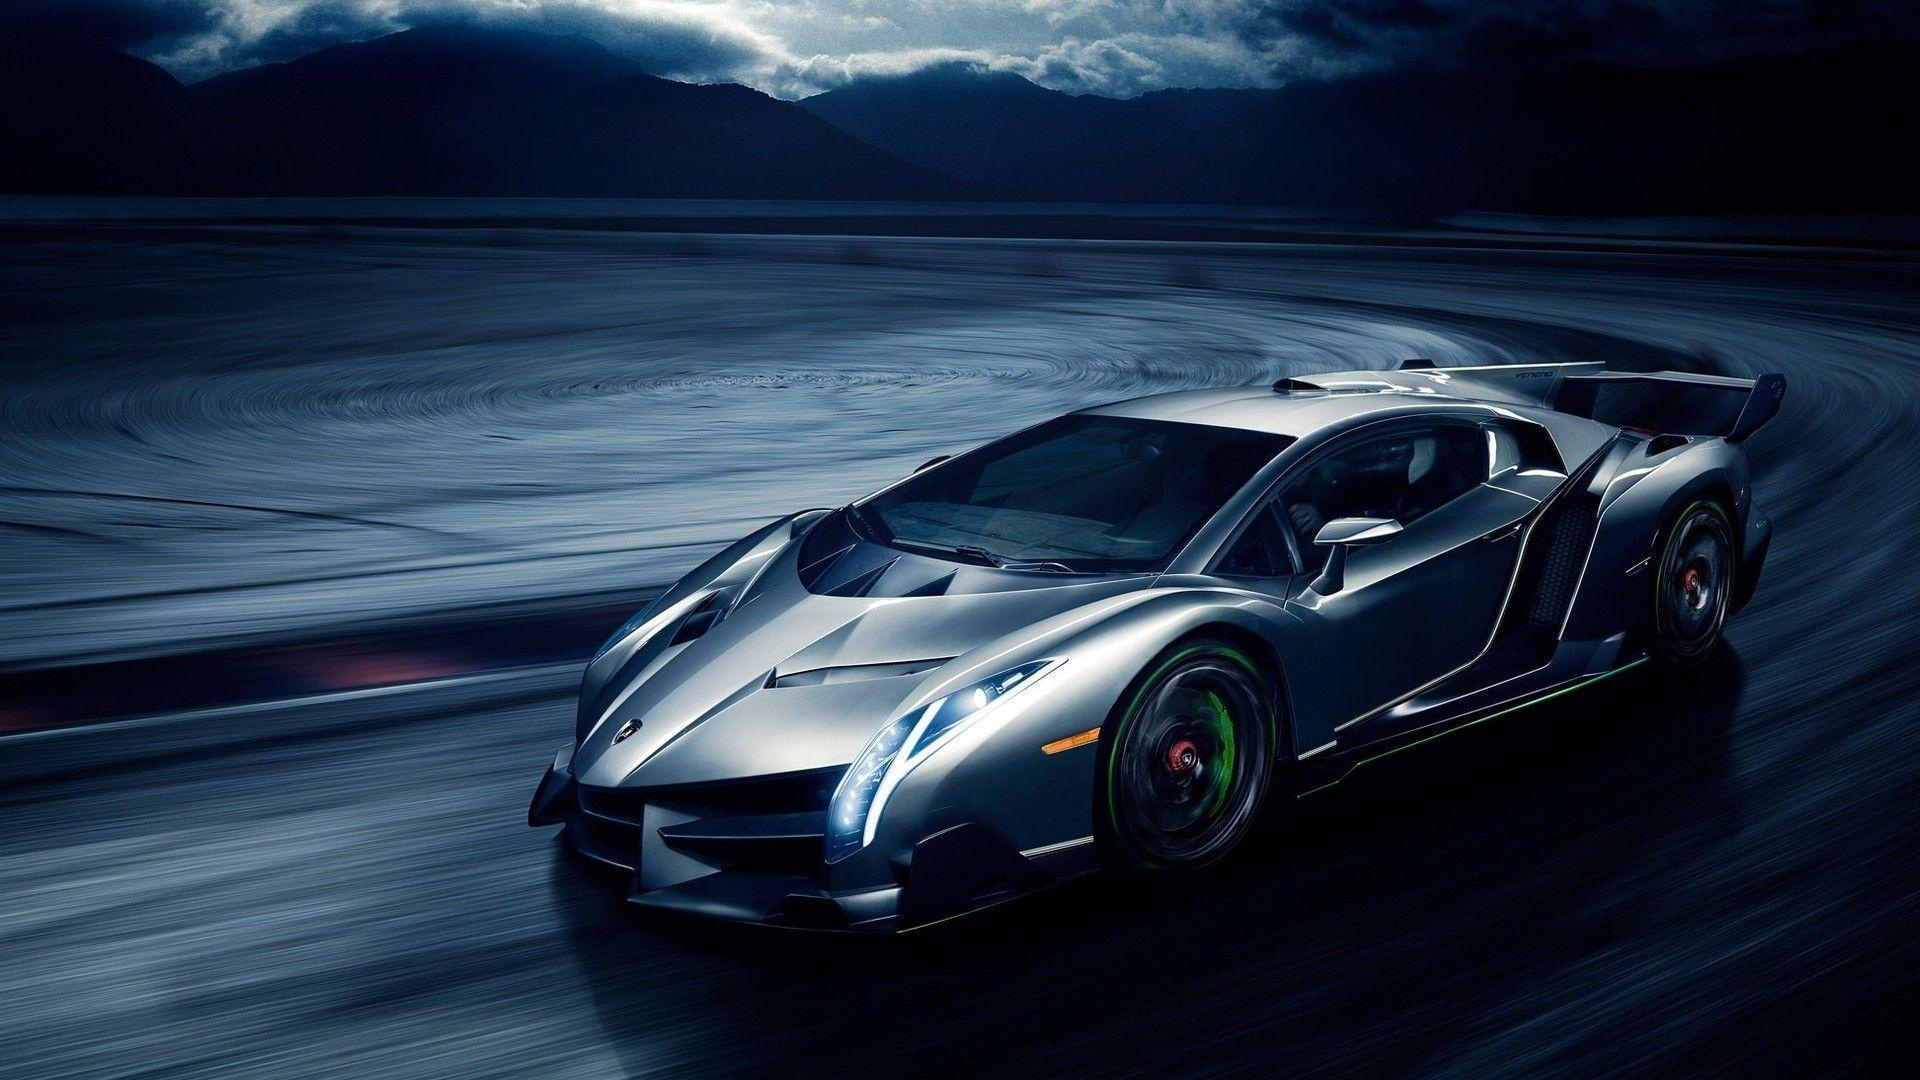 Lamborghini Veneno Wallpapers , Wallpaper Cave